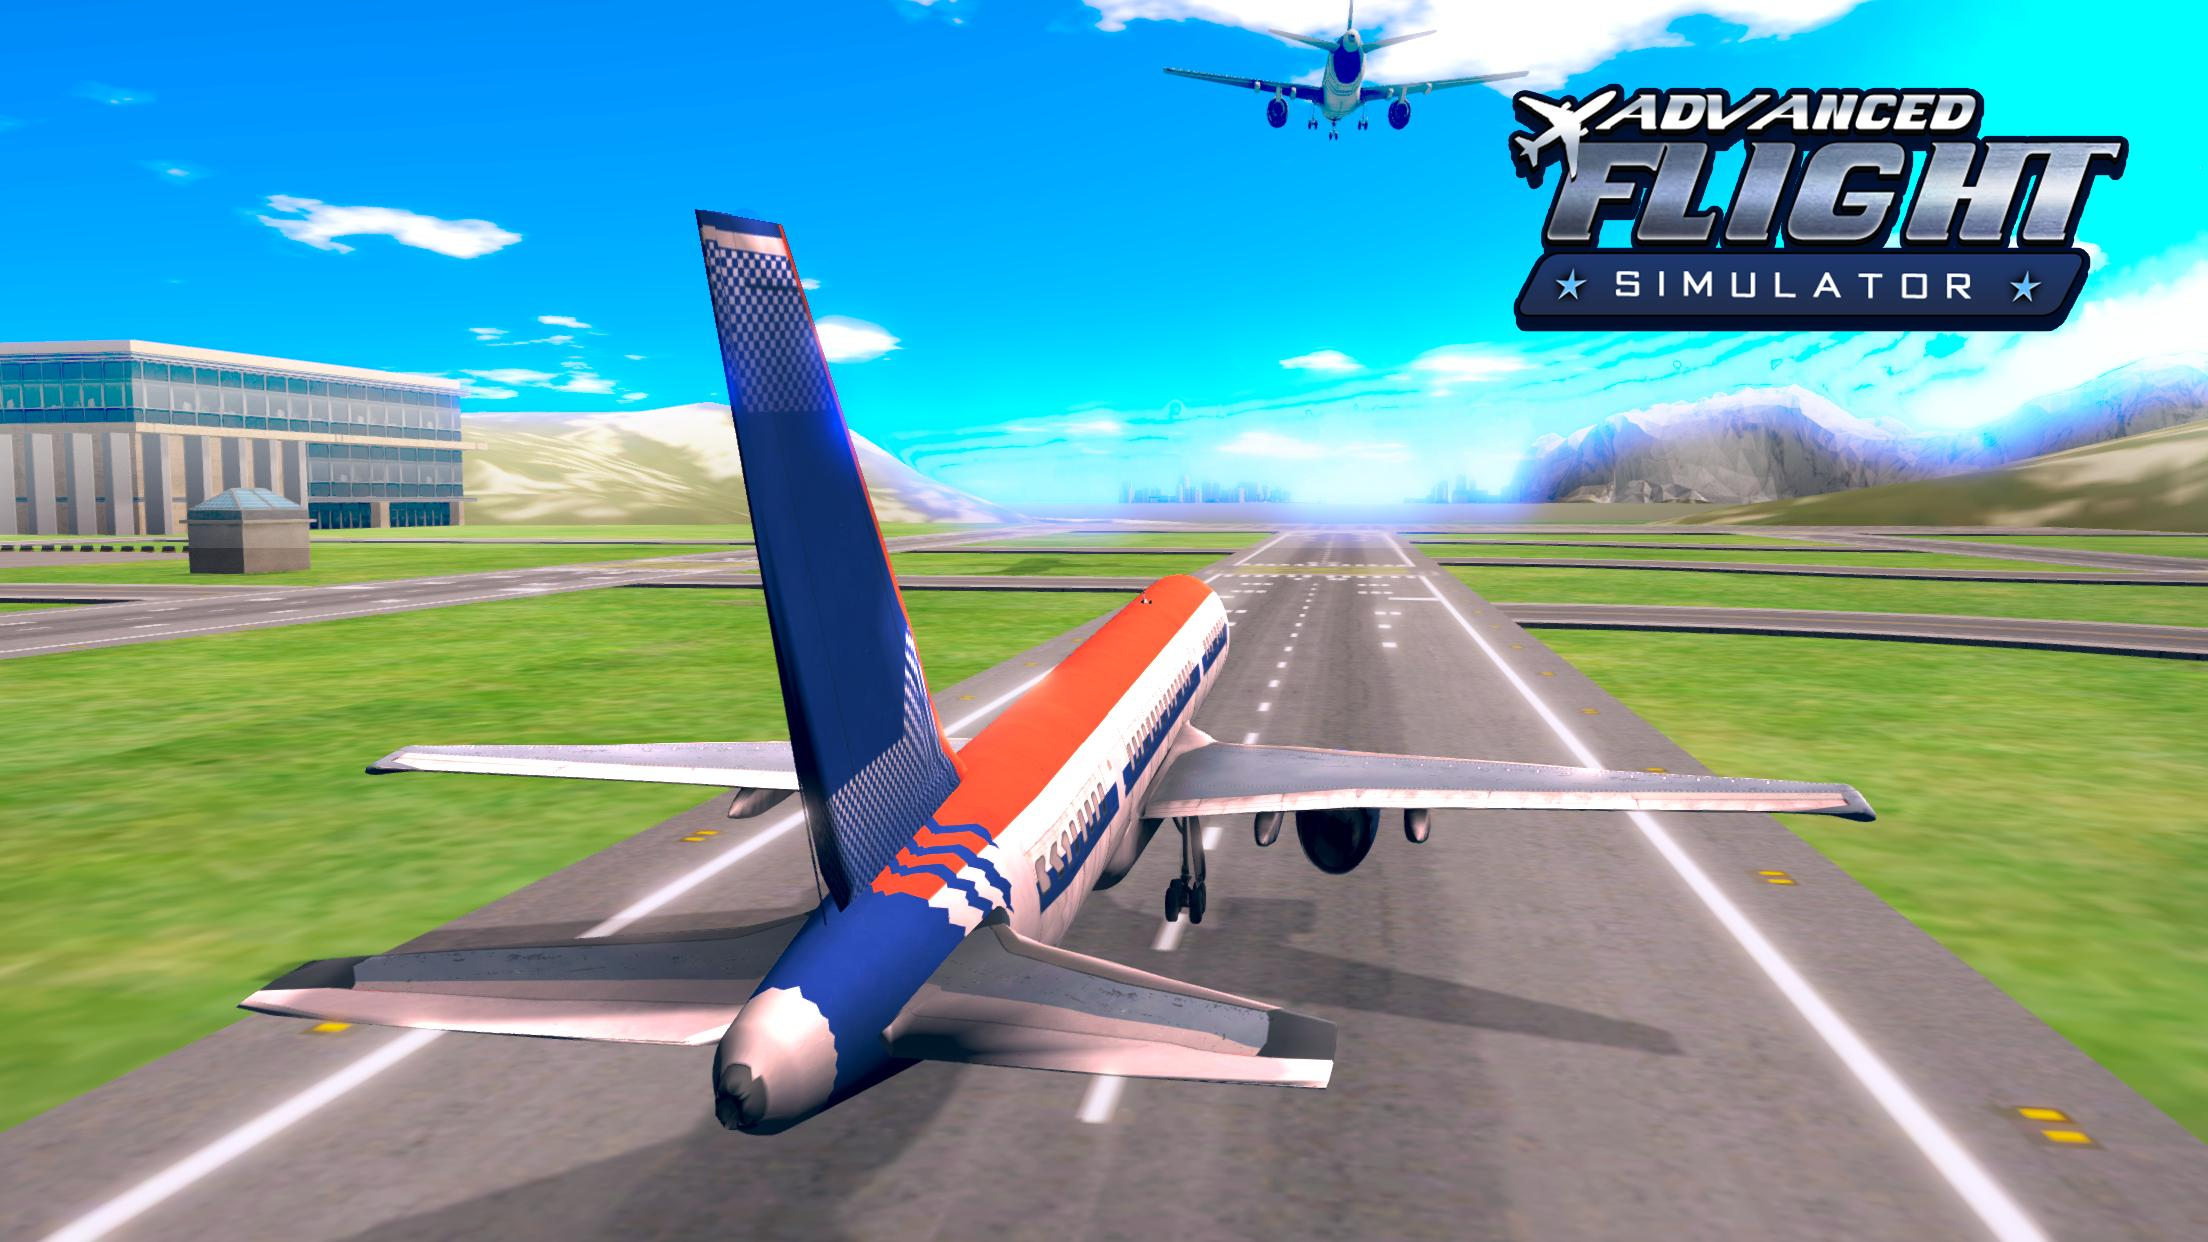 Airplane Real Flight Simulator 2020 Plane Games 5.4 Screenshot 3